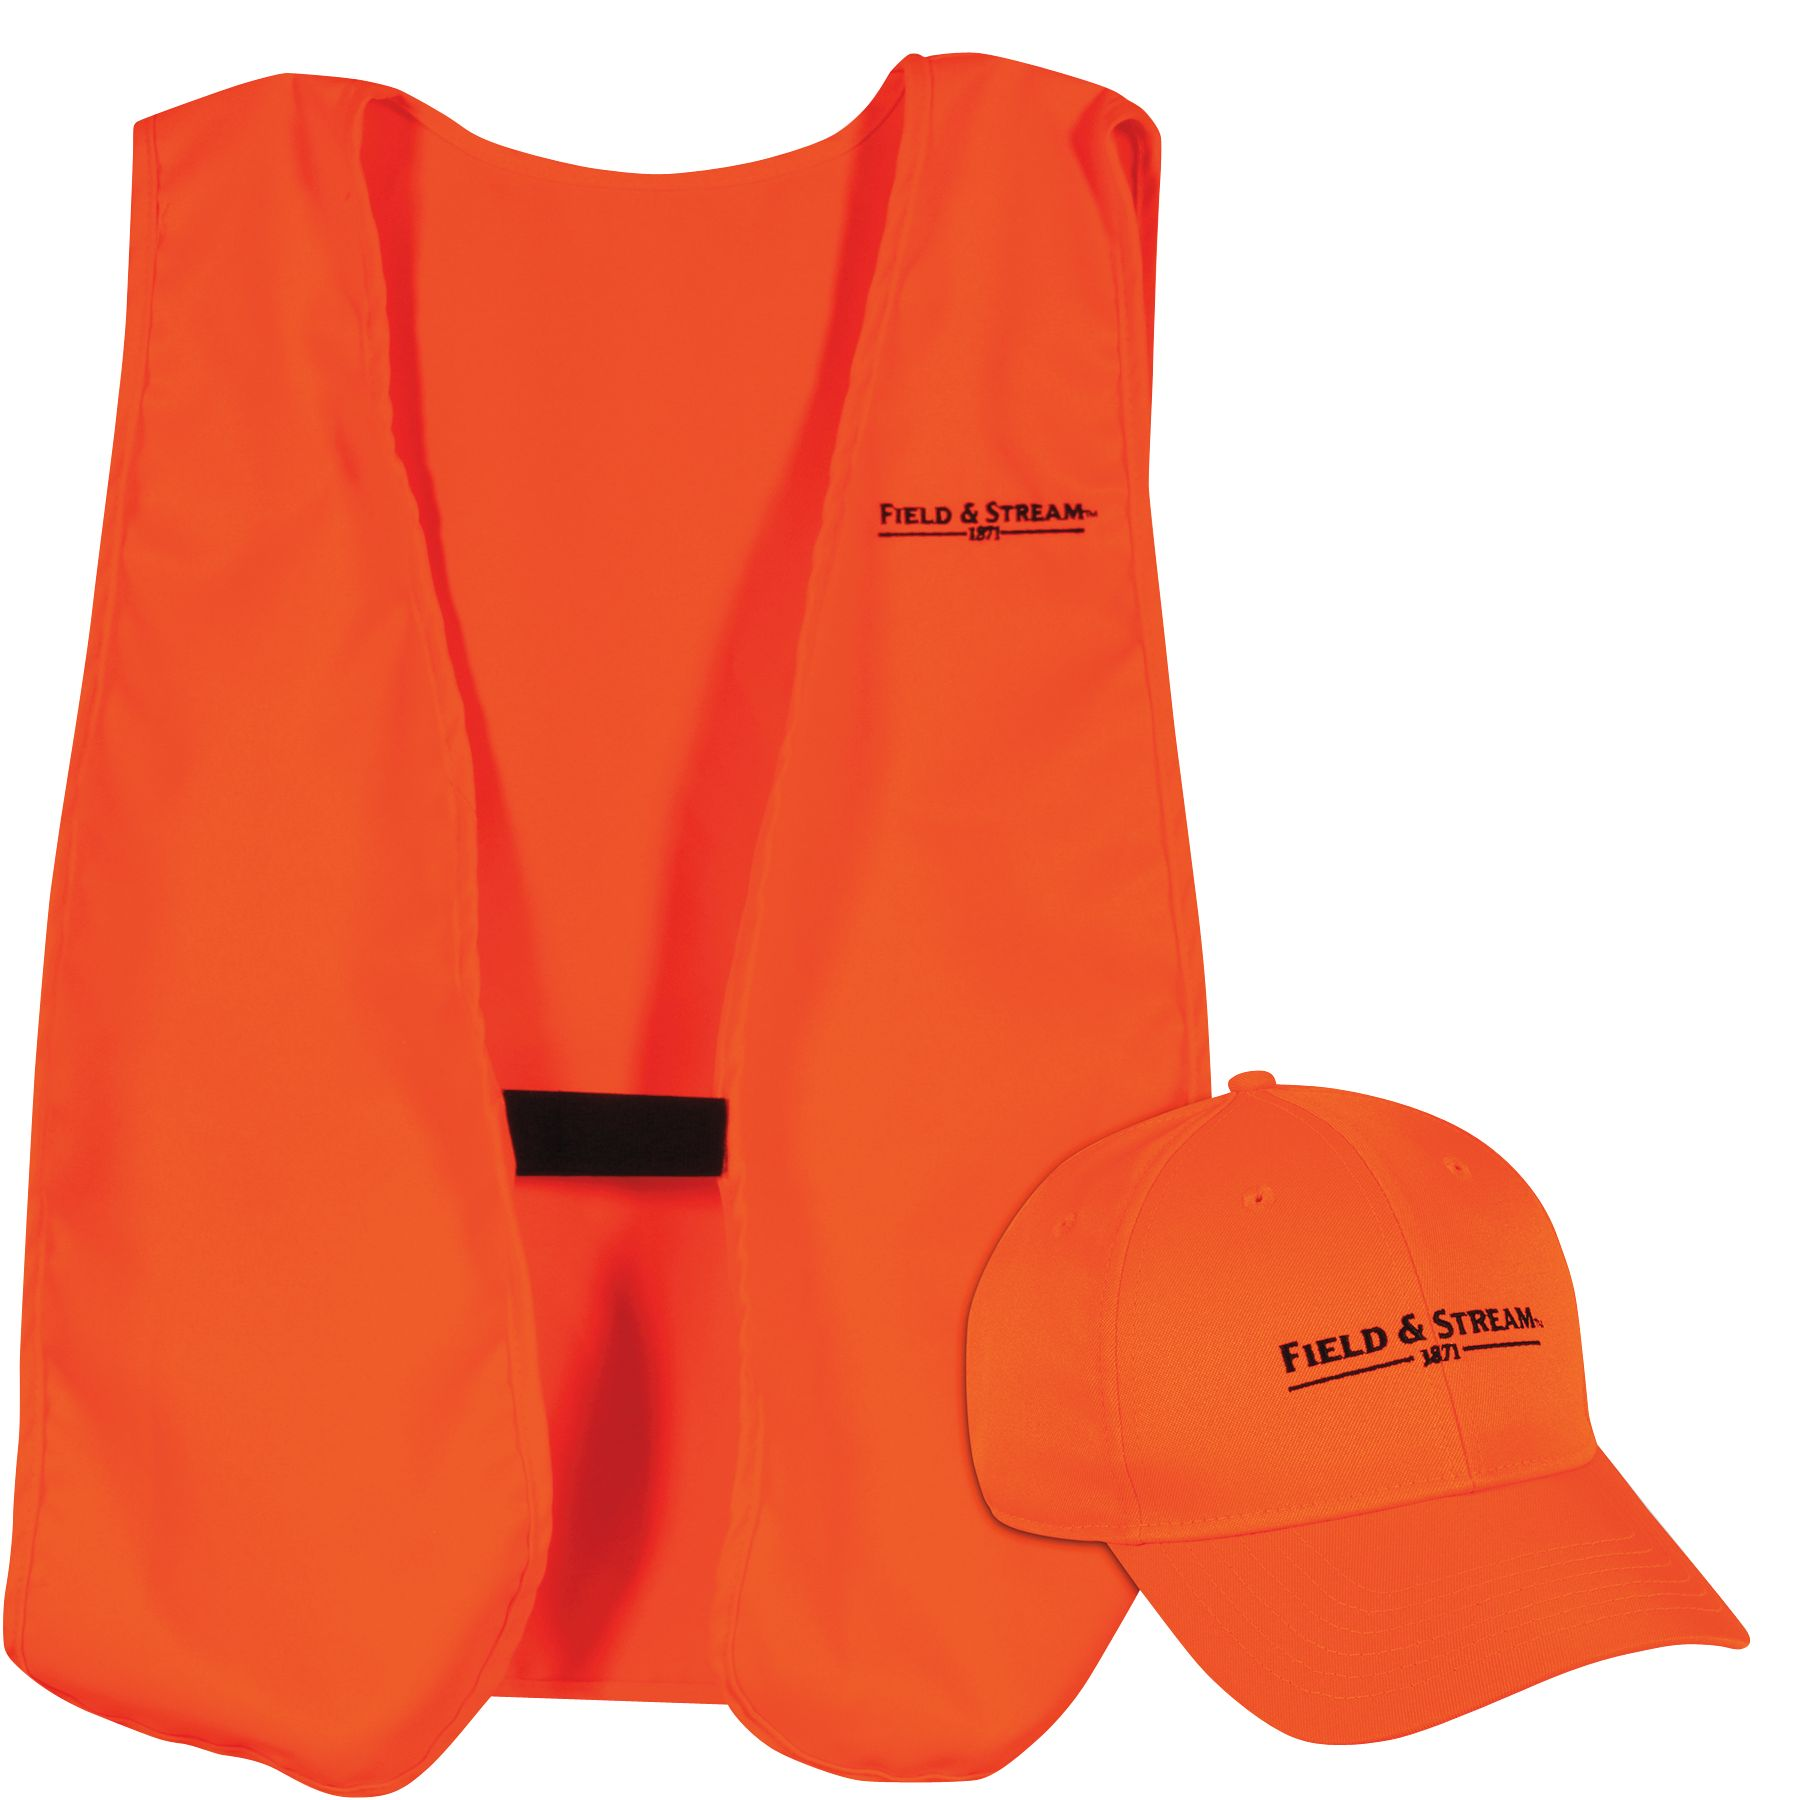 Field & Stream Youth Hat and Vest Combo, Kids, Blaze Orange